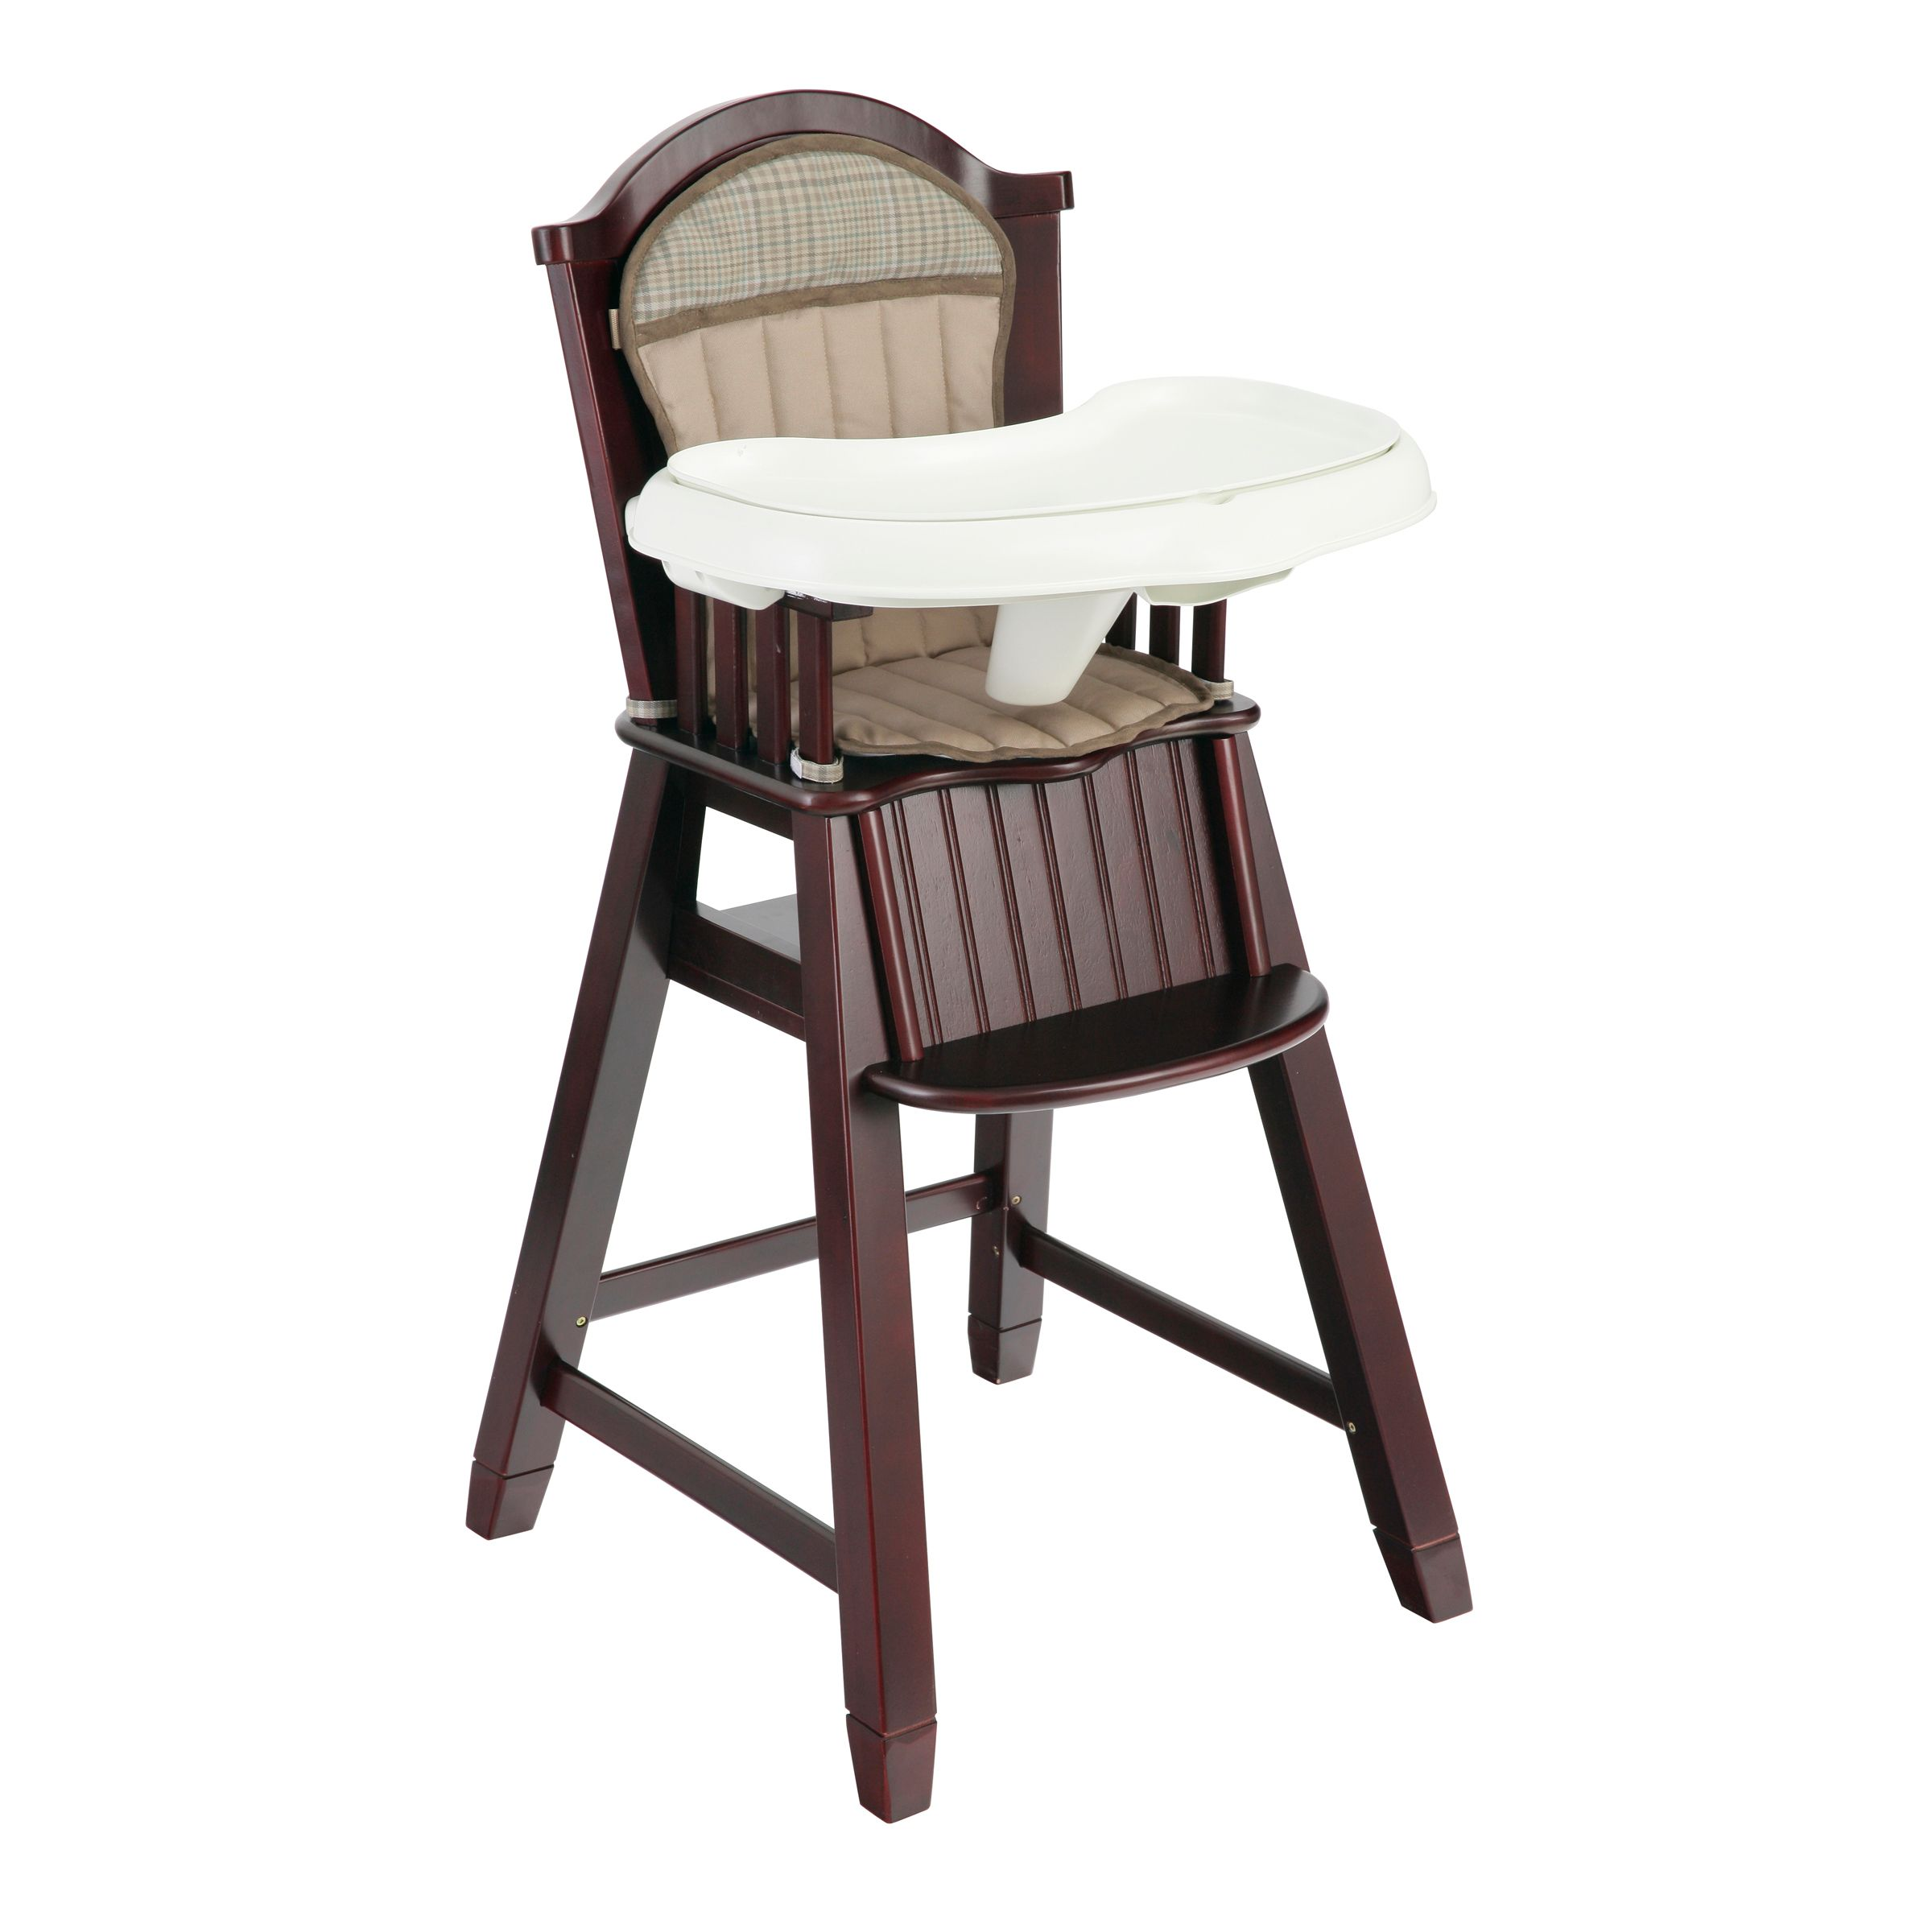 wooden high chairs for babies stretch sofa chair covers eddie bauer highchair